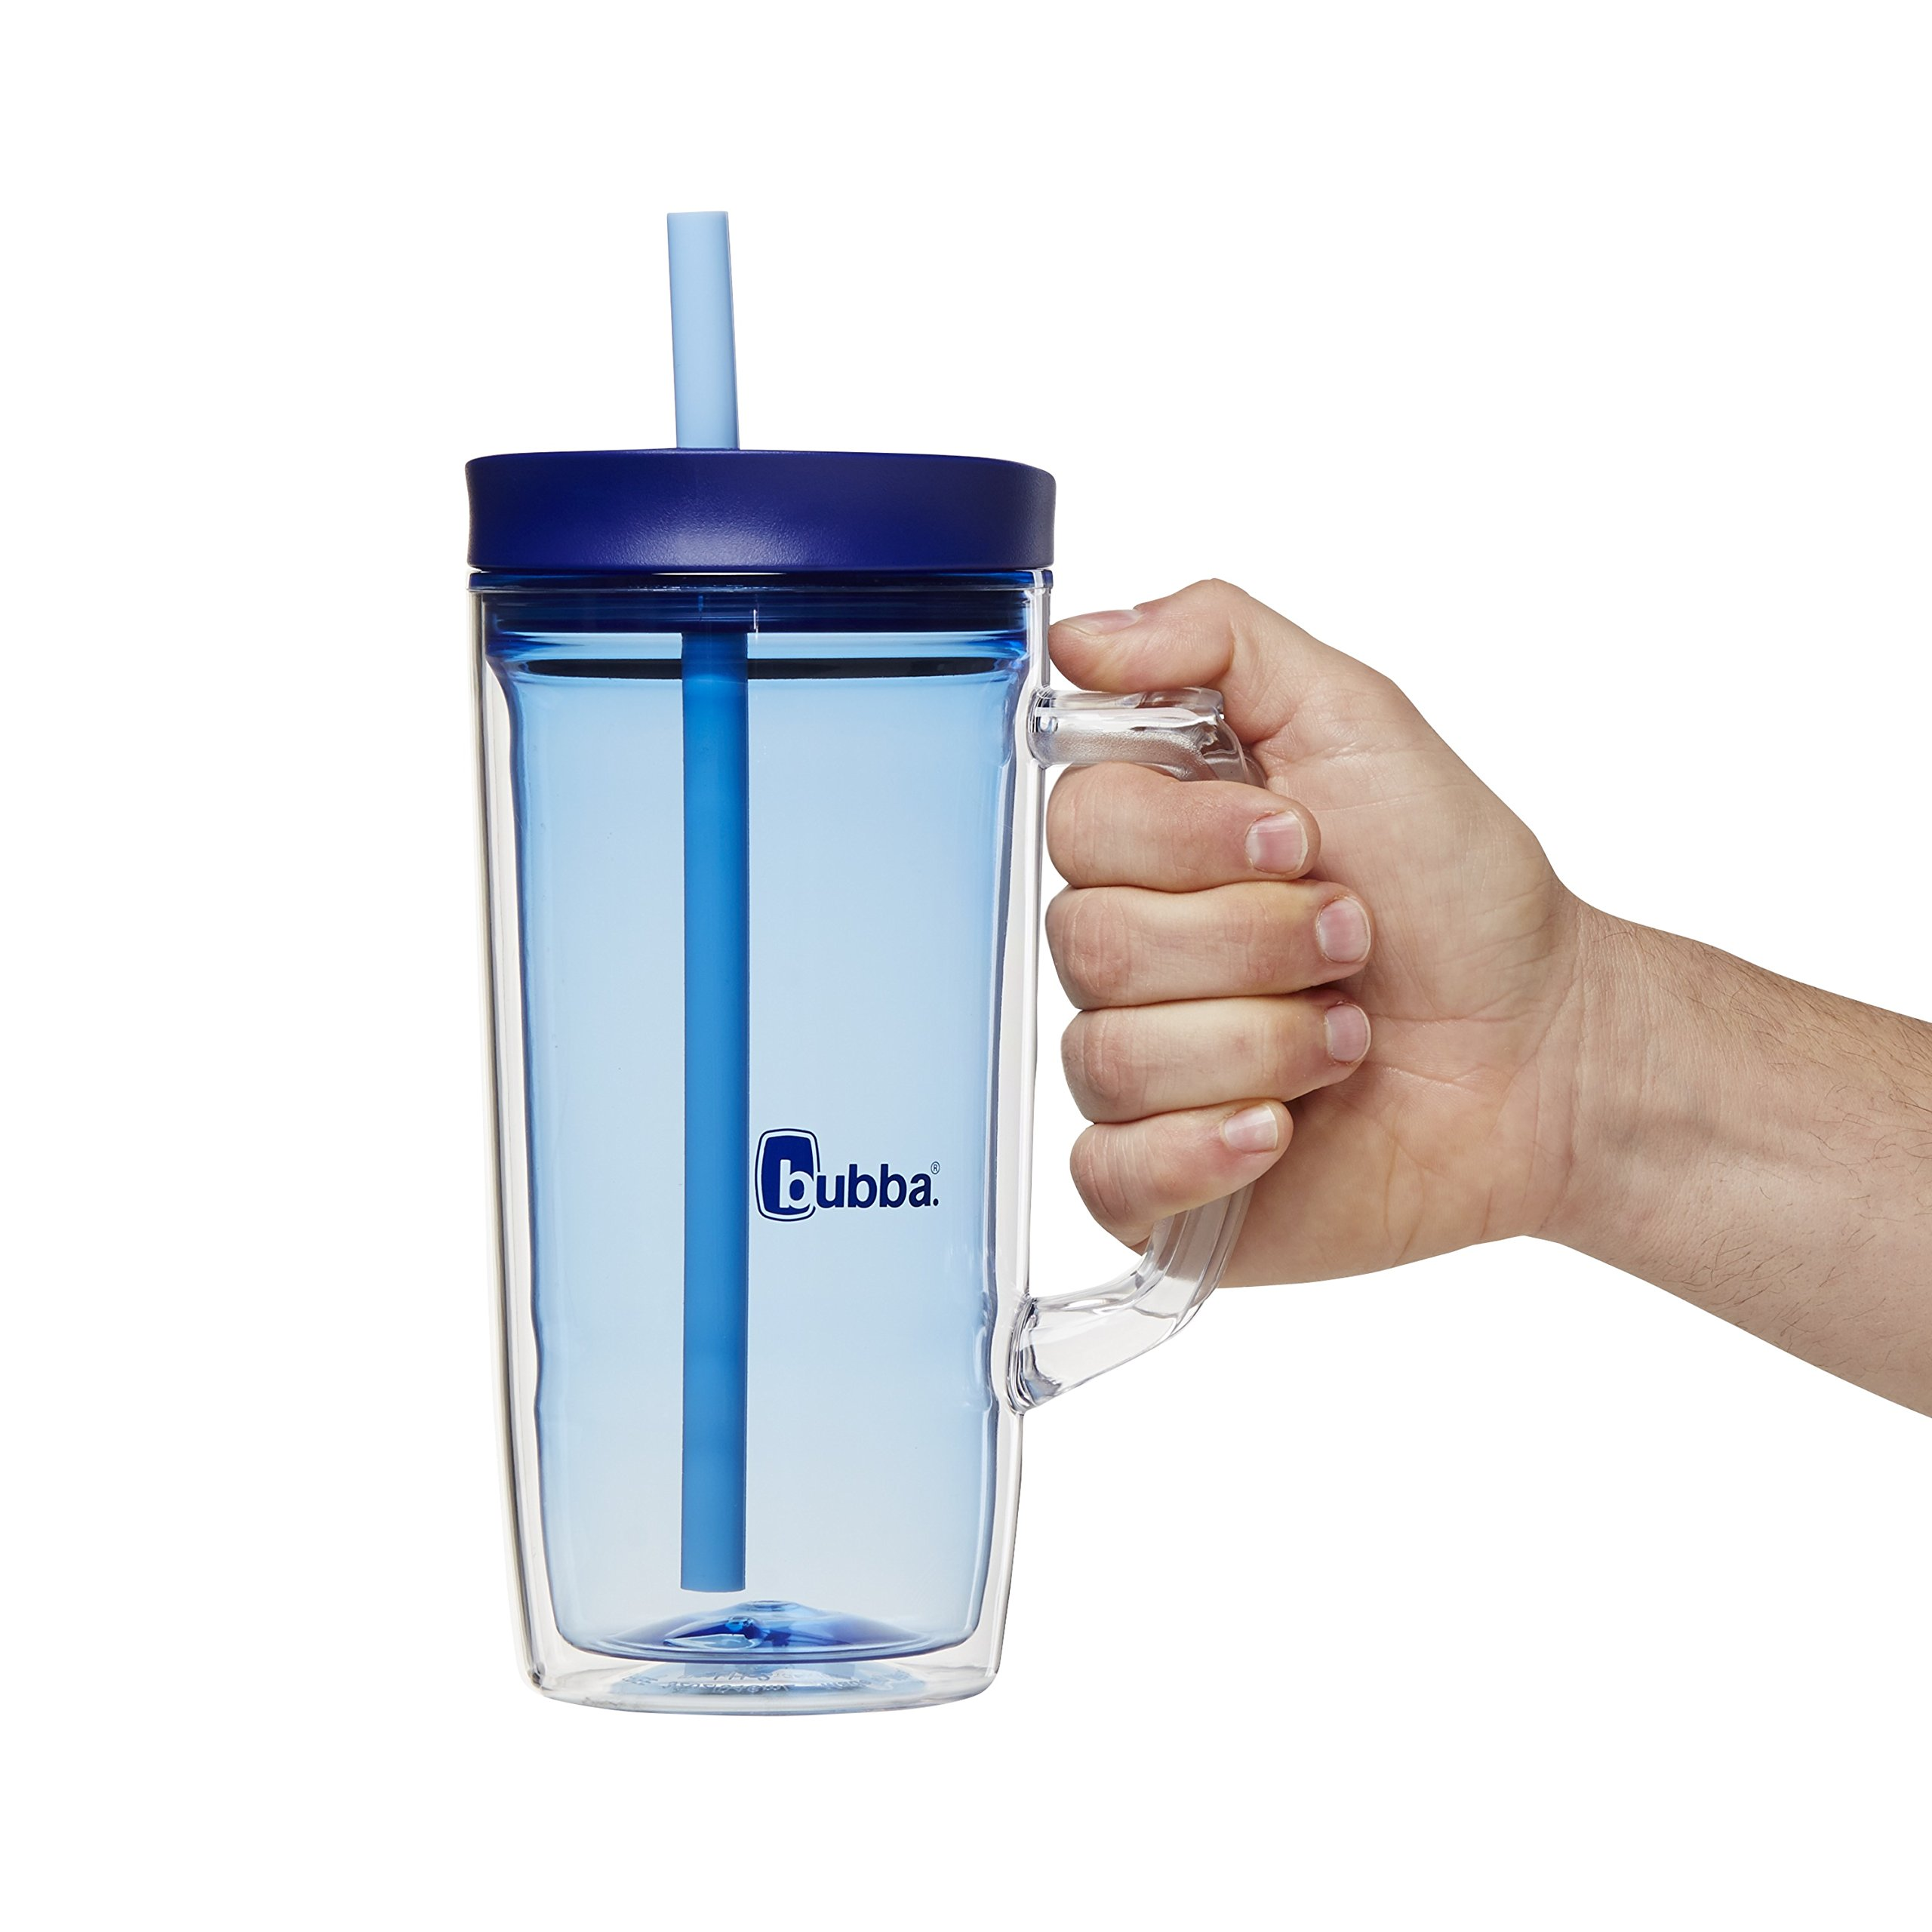 Bubba Envy Double Wall Insulated Straw Tumbler with Handle, 32 oz, Blue by BUBBA BRANDS (Image #4)